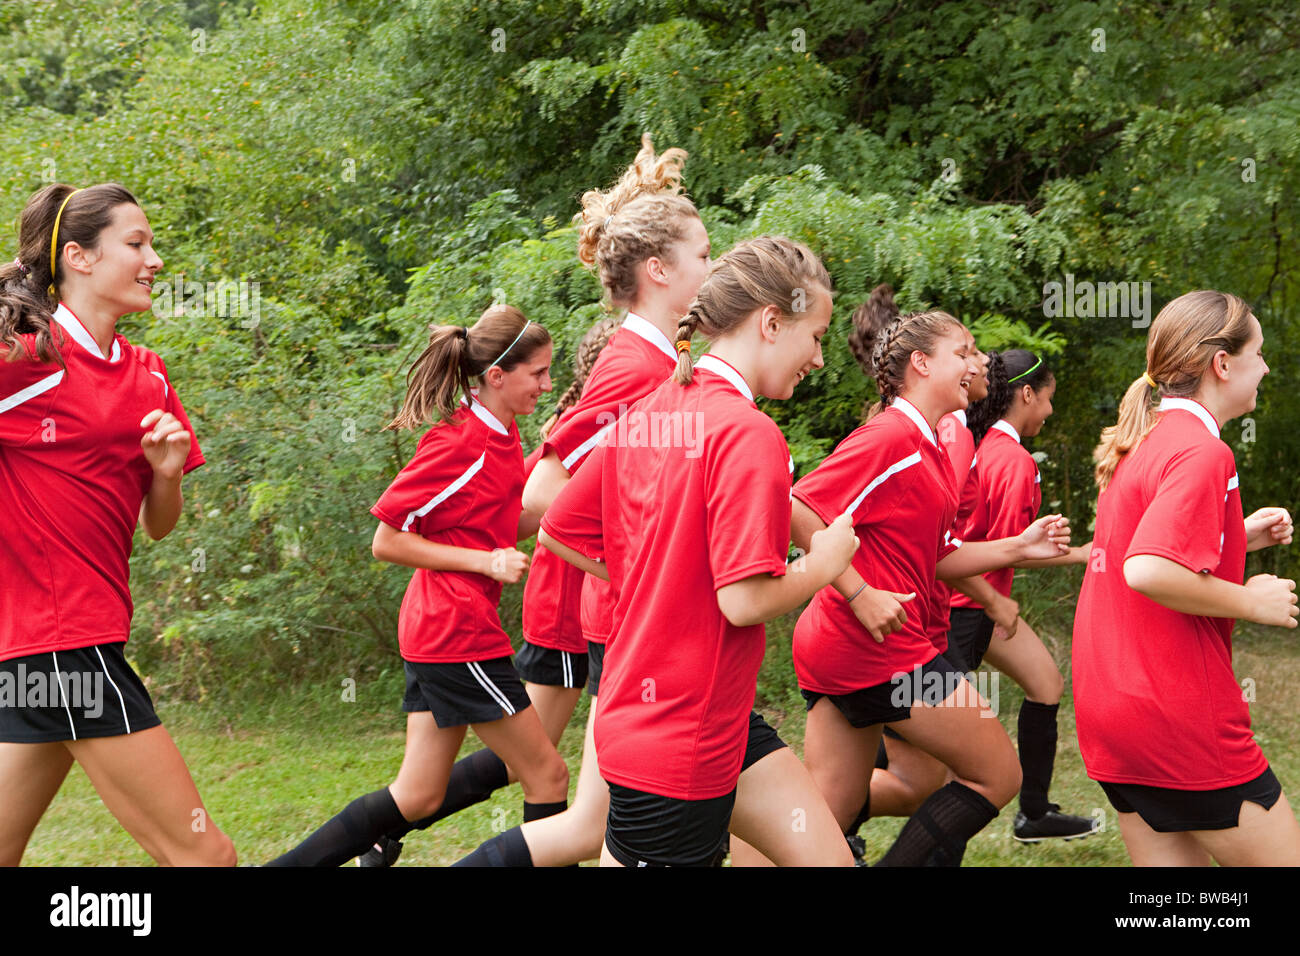 Girl soccer players running - Stock Image